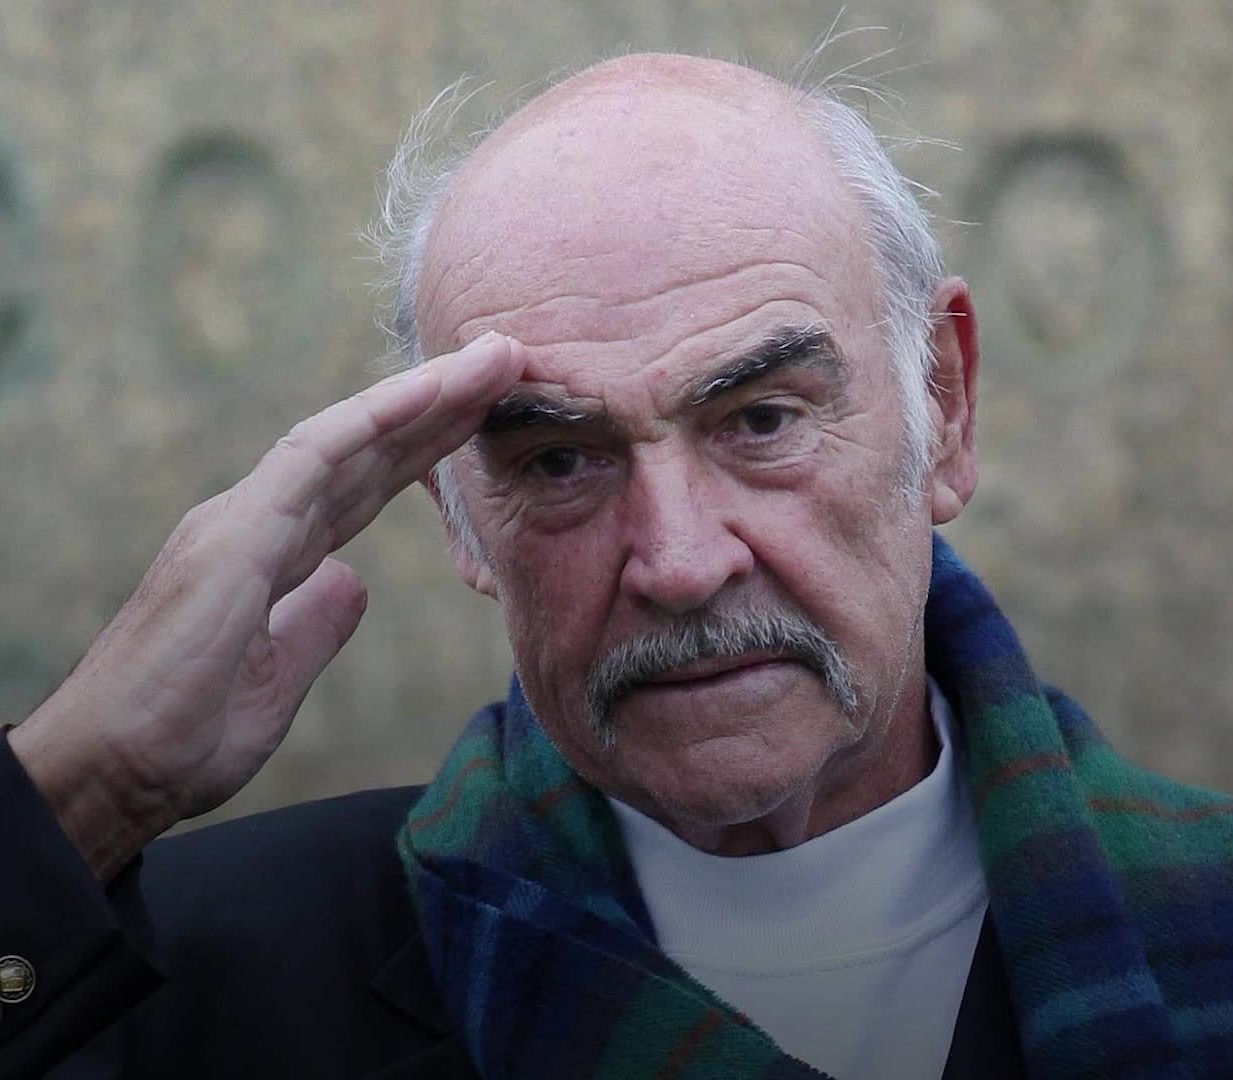 image 4 1 e1604328605299 20 Things You Never Knew About Sean Connery